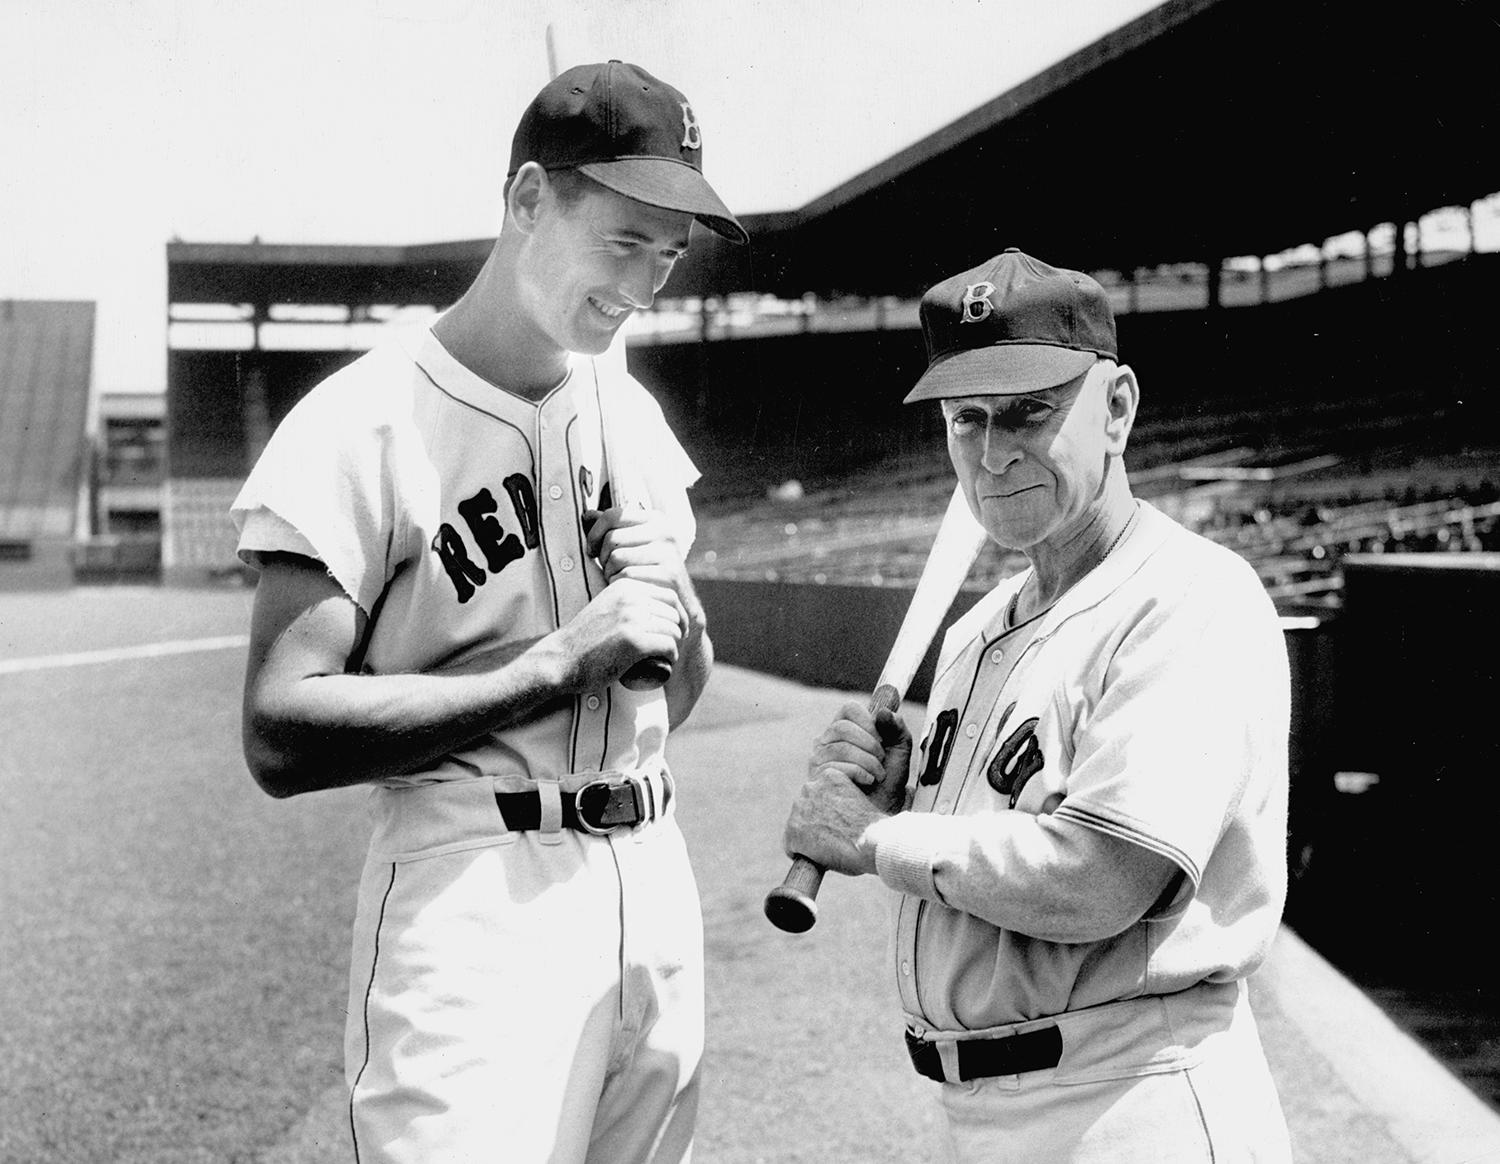 "Hugh Duffy (right), who set the record for the highest batting average in a single season with .440, told Shirley Povich of the <em> Washington Post</em>, that ""until Williams came along, I thought my record was safe forever...I didn't think anybody would come close, but now this Williams comes along and I don't think it's out of his reach."" (National Baseball Hall of Fame)"